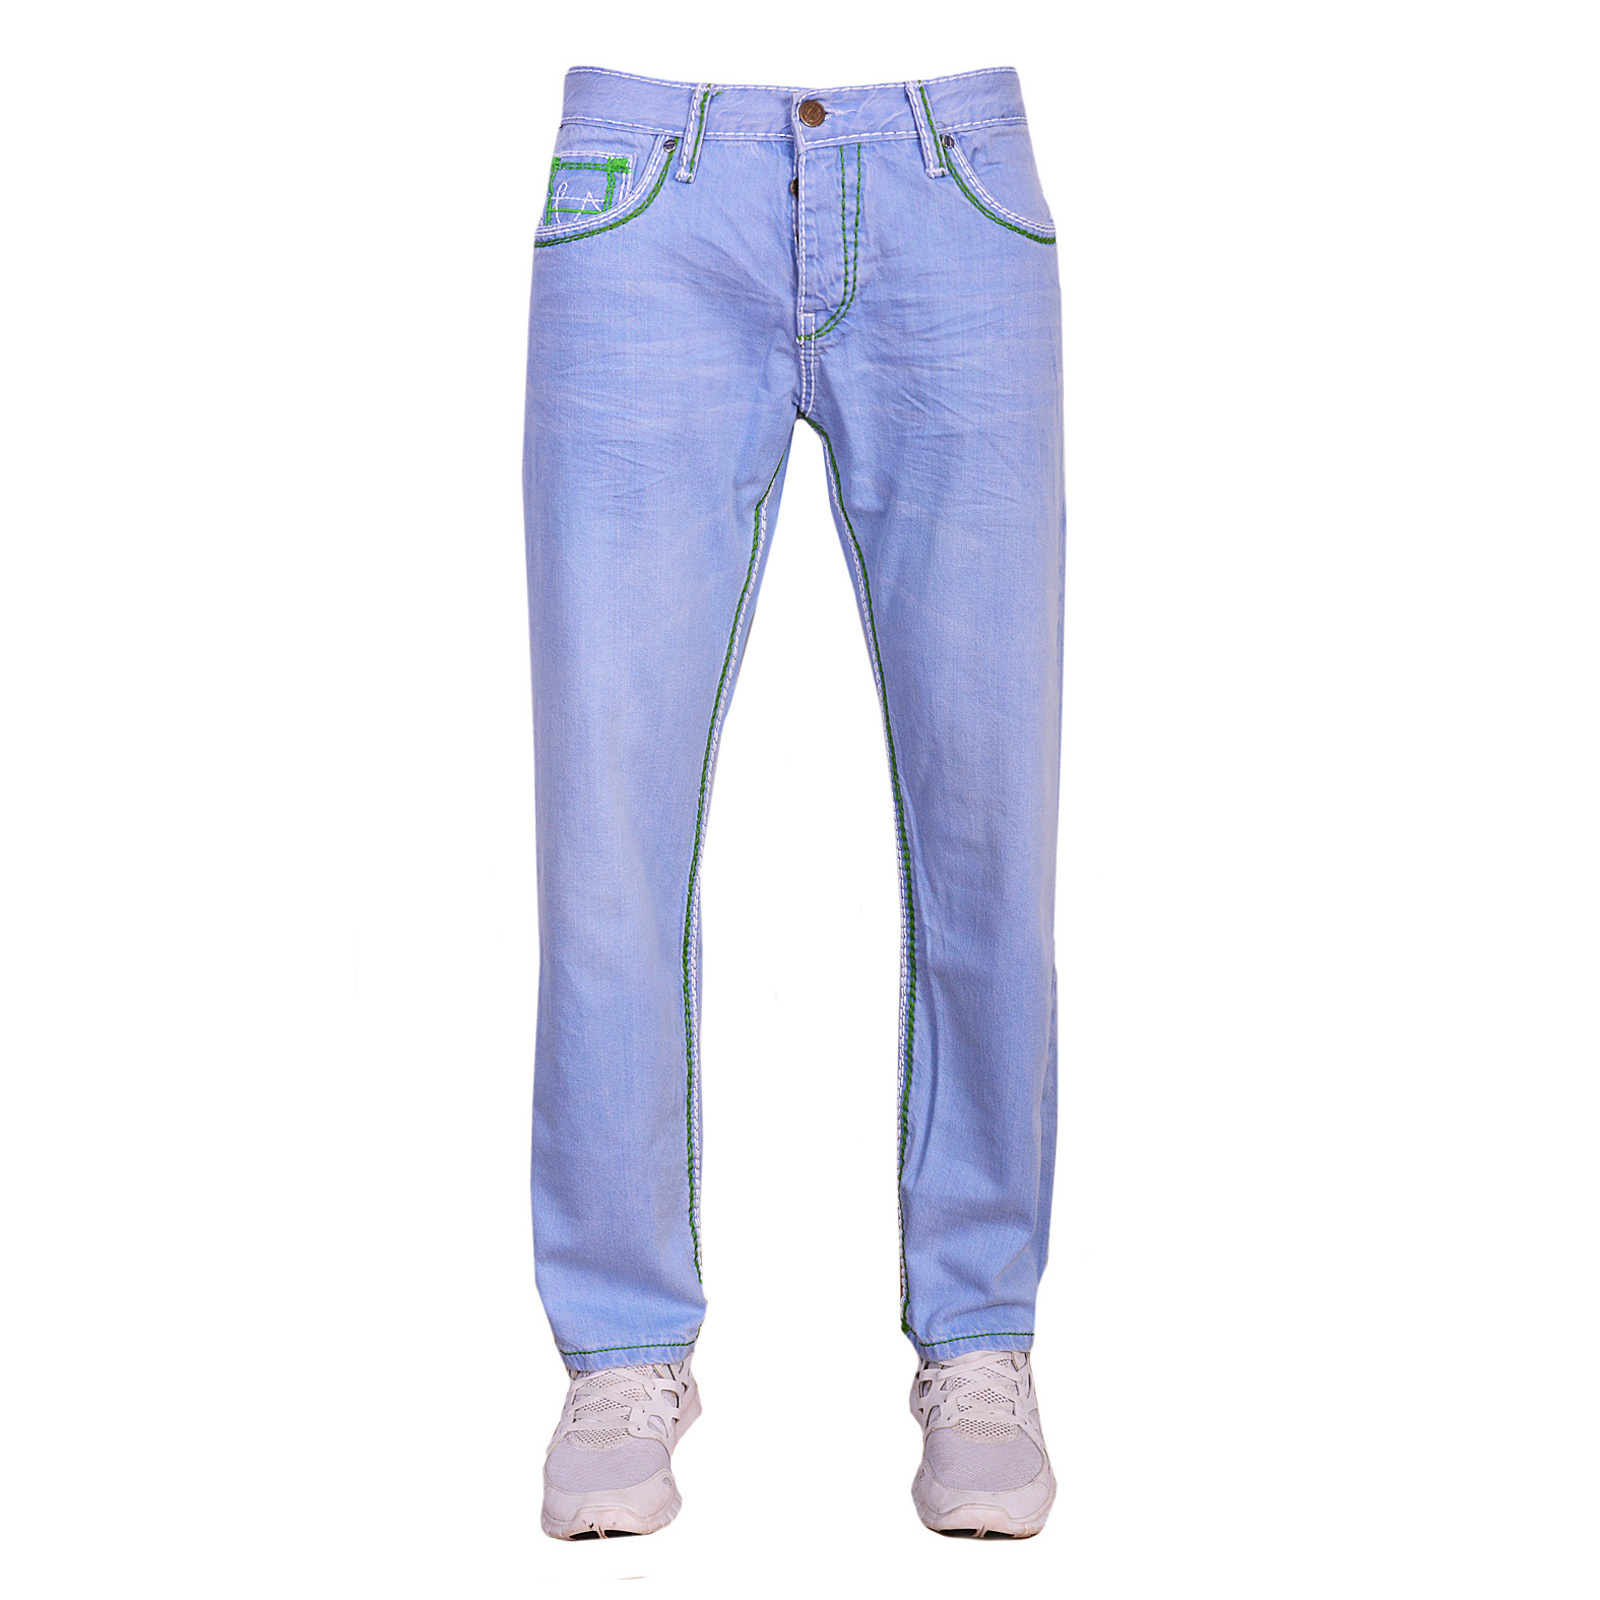 Amica Jeans  Amica Jeans 9574-5